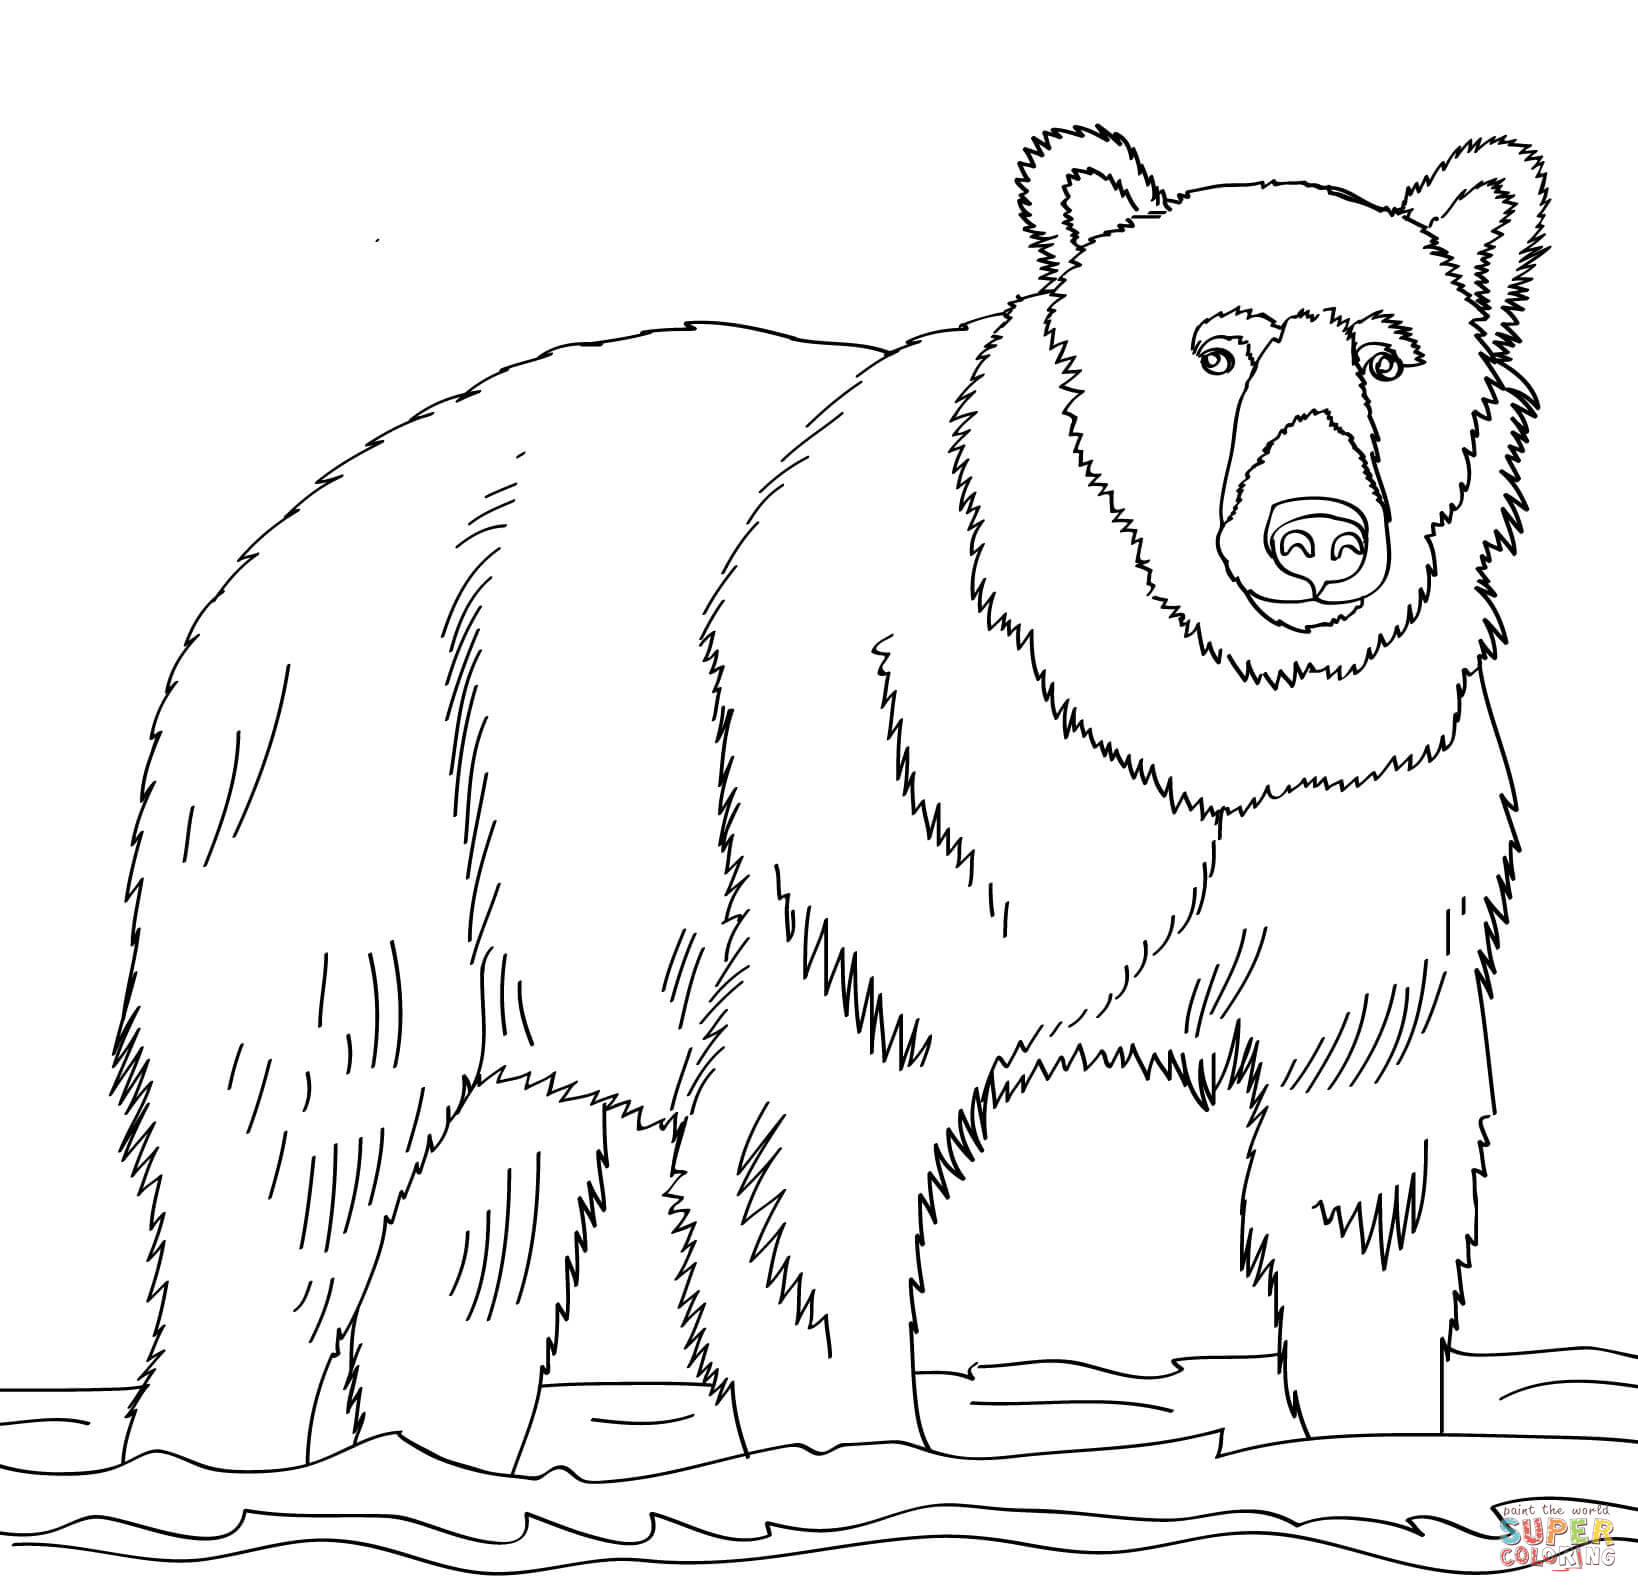 Brown Bear Stands In Shallow Water Coloring Page